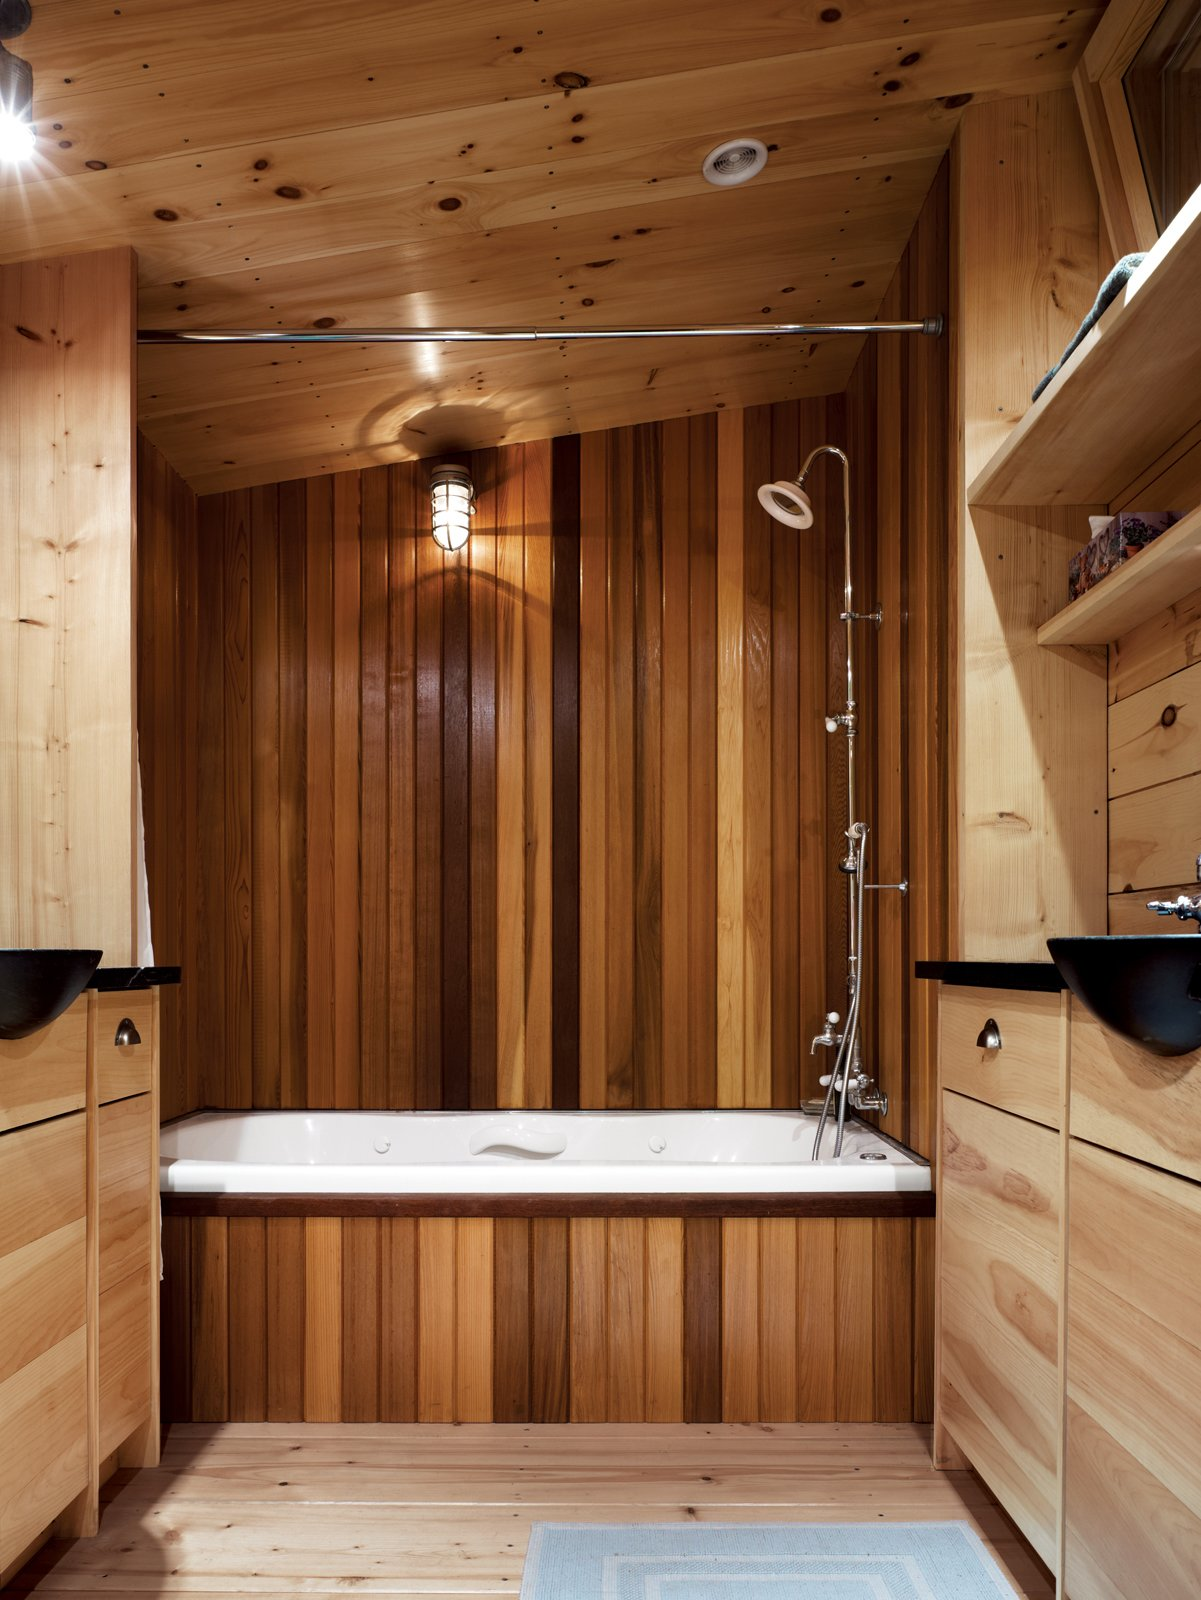 #bath #spa #bath&spa #modern #interior #interiordesign #bathroom #shower #bath #woodpanels #masterbath #twinsinks #maine #penobscotbay #storage   Photo by Raimund Koch  Photo 9 of 22 in Bath & Spa Intrigue from Bath